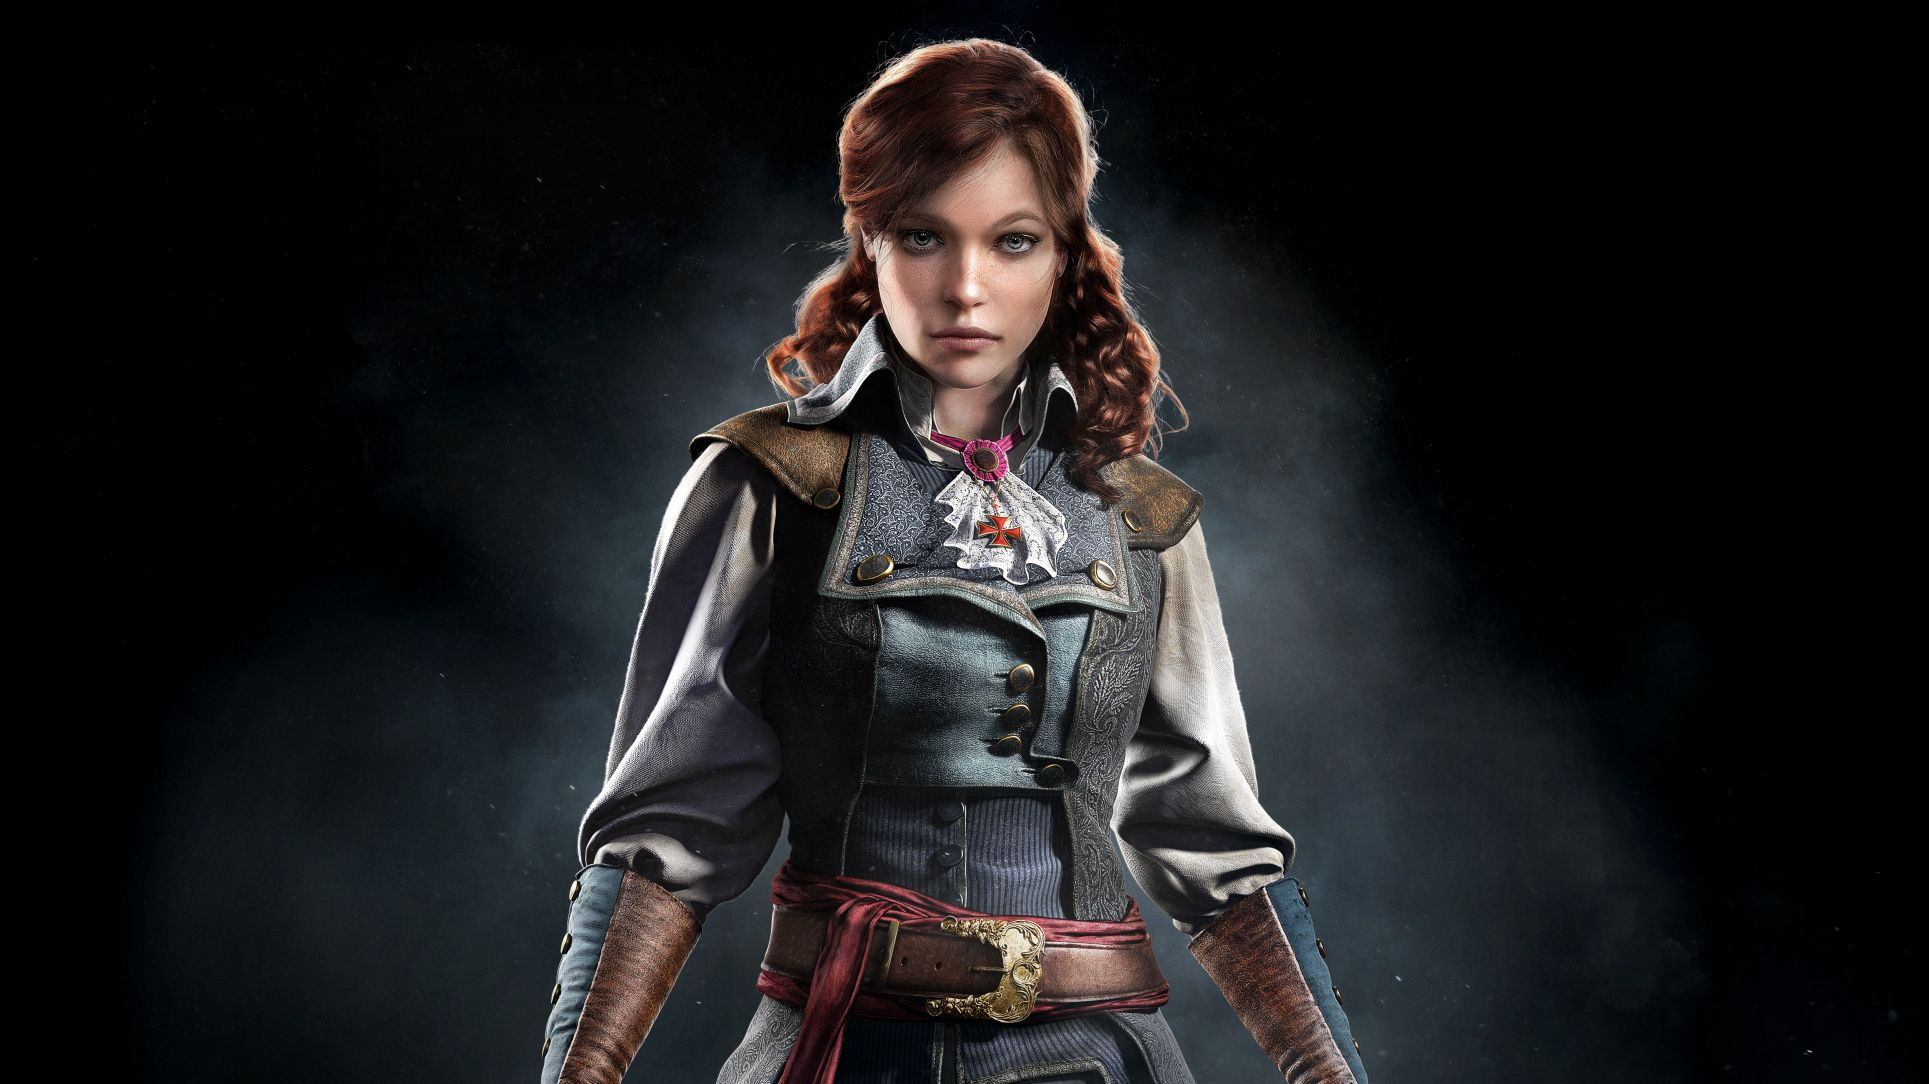 Female character Elise revealed for Assassin's Creed Unity